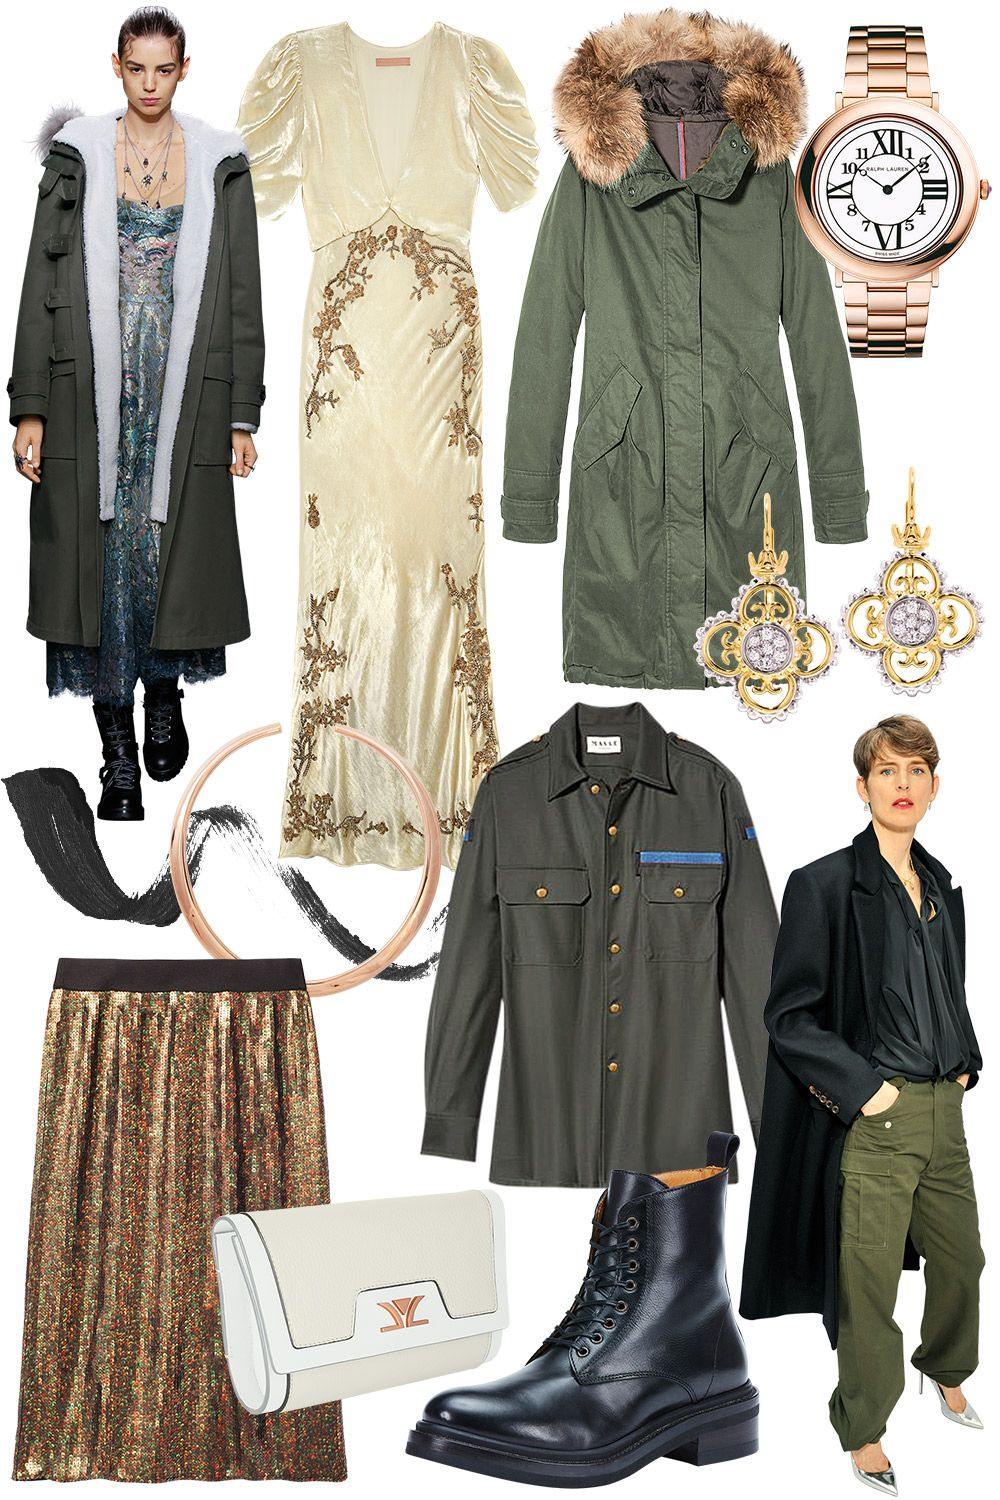 """<p><strong data-redactor-tag=""""strong"""" data-verified=""""redactor"""">STYLIST'S TIP:</strong>An army green jacket toughens up a girly dress.</p><p><em data-redactor-tag=""""em"""" data-verified=""""redactor""""><strong data-redactor-tag=""""strong"""" data-verified=""""redactor""""><br></strong></em></p><p><em data-redactor-tag=""""em"""" data-verified=""""redactor""""><span class=""""redactor-invisible-space"""" data-verified=""""redactor"""" data-redactor-tag=""""span"""" data-redactor-class=""""redactor-invisible-space""""><strong data-redactor-tag=""""strong"""" data-verified=""""redactor""""></strong></span></em><em data-redactor-tag=""""em"""" data-verified=""""redactor""""><strong data-redactor-tag=""""strong"""" data-verified=""""redactor"""">Brock Collection</strong> dress, $4,290, <a href=""""http://www.brocknewyork.com/"""" target=""""_blank"""">brocknewyork.com</a>; <strong data-redactor-tag=""""strong"""" data-verified=""""redactor"""">Moncler</strong> jacket, $1,975, <a href=""""http://moncler.com"""" target=""""_blank"""">moncler.com</a>; <strong data-redactor-tag=""""strong"""" data-verified=""""redactor"""">Ralph Lauren</strong> watch, $21,800, <a href=""""http://www.ralphlauren.com/home/index.jsp?ab=Geo_iUS_rUS_dUS"""" target=""""_blank"""">ralphlauren.com</a>; <strong data-redactor-tag=""""strong"""" data-verified=""""redactor"""">Lancôme</strong> Grandiôse Liner in Matte Noir, $32, <a href=""""http://www.lancome-usa.com/"""" target=""""_blank"""">lancome-usa.com</a>; <strong data-redactor-tag=""""strong"""" data-verified=""""redactor"""">Sidney Garber</strong> necklace, $18,200, <a href=""""http://sidneygarber.com/"""" target=""""_blank"""">sidneygarber.com</a>; <strong data-redactor-tag=""""strong"""" data-verified=""""redactor"""">Maison Mayle</strong> shirt, $795, <a href=""""http://maisonmayle.com/"""" target=""""_blank"""">maisonmayle.com</a>; <strong data-redactor-tag=""""strong"""" data-verified=""""redactor"""">Vahan</strong> earrings, $2,625, <a href=""""http://www.vahanjewelry.com/"""" target=""""_blank"""">vahanjewelry.com</a>; <strong data-redactor-tag=""""strong"""" data-verified=""""redactor"""">Le Vian </strong>clutch, $799, <a href=""""http://levian.com/brandedbylevian/"""" target=""""_blank"""">levian.com</"""